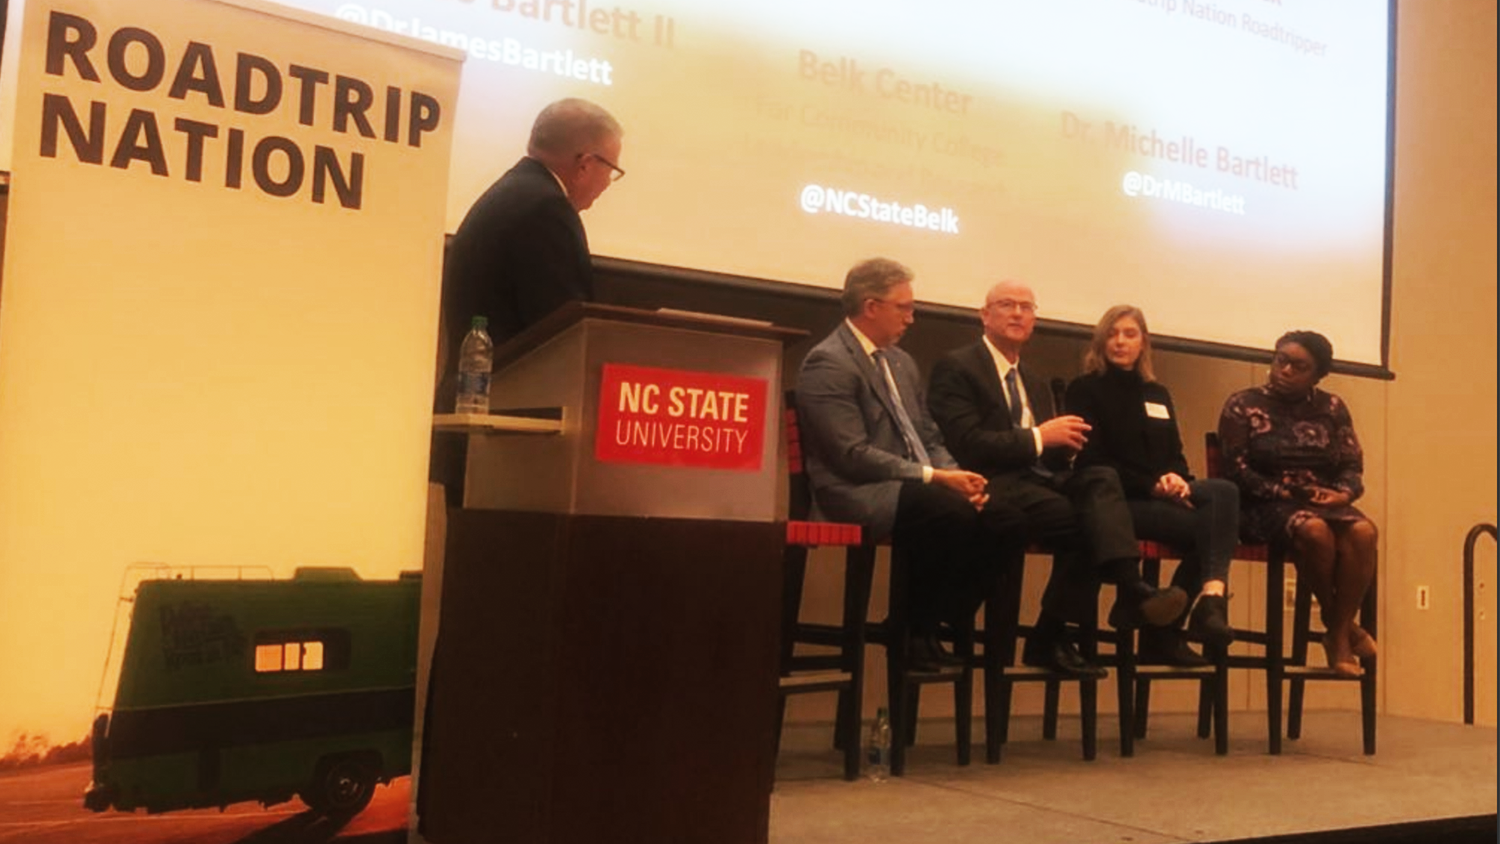 A panel discussion followed a screening of One Step Closer at the NC State College of Education